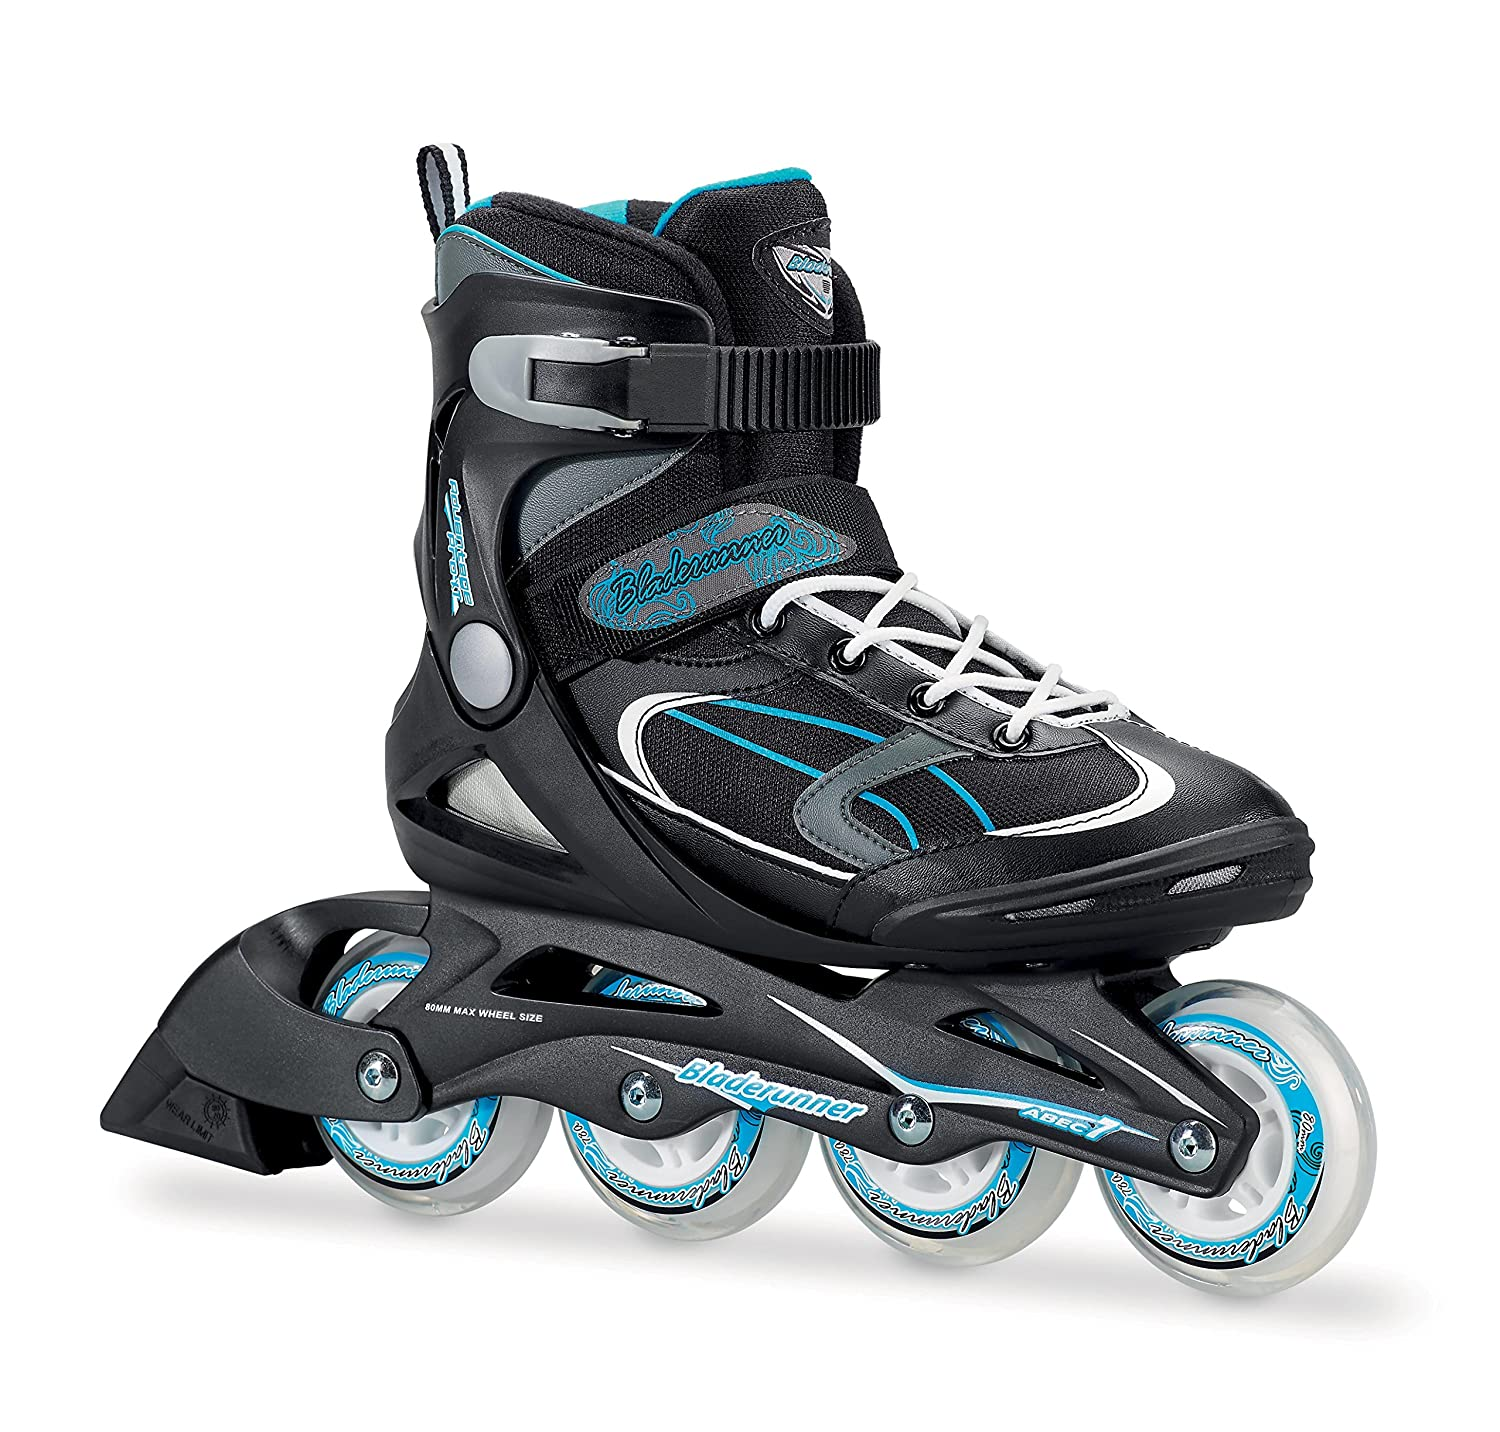 Bladerunner by Rollerblade Advantage Pro XT Women's Adult Fitness Inline Skate Black and Light Blue Inline Skates